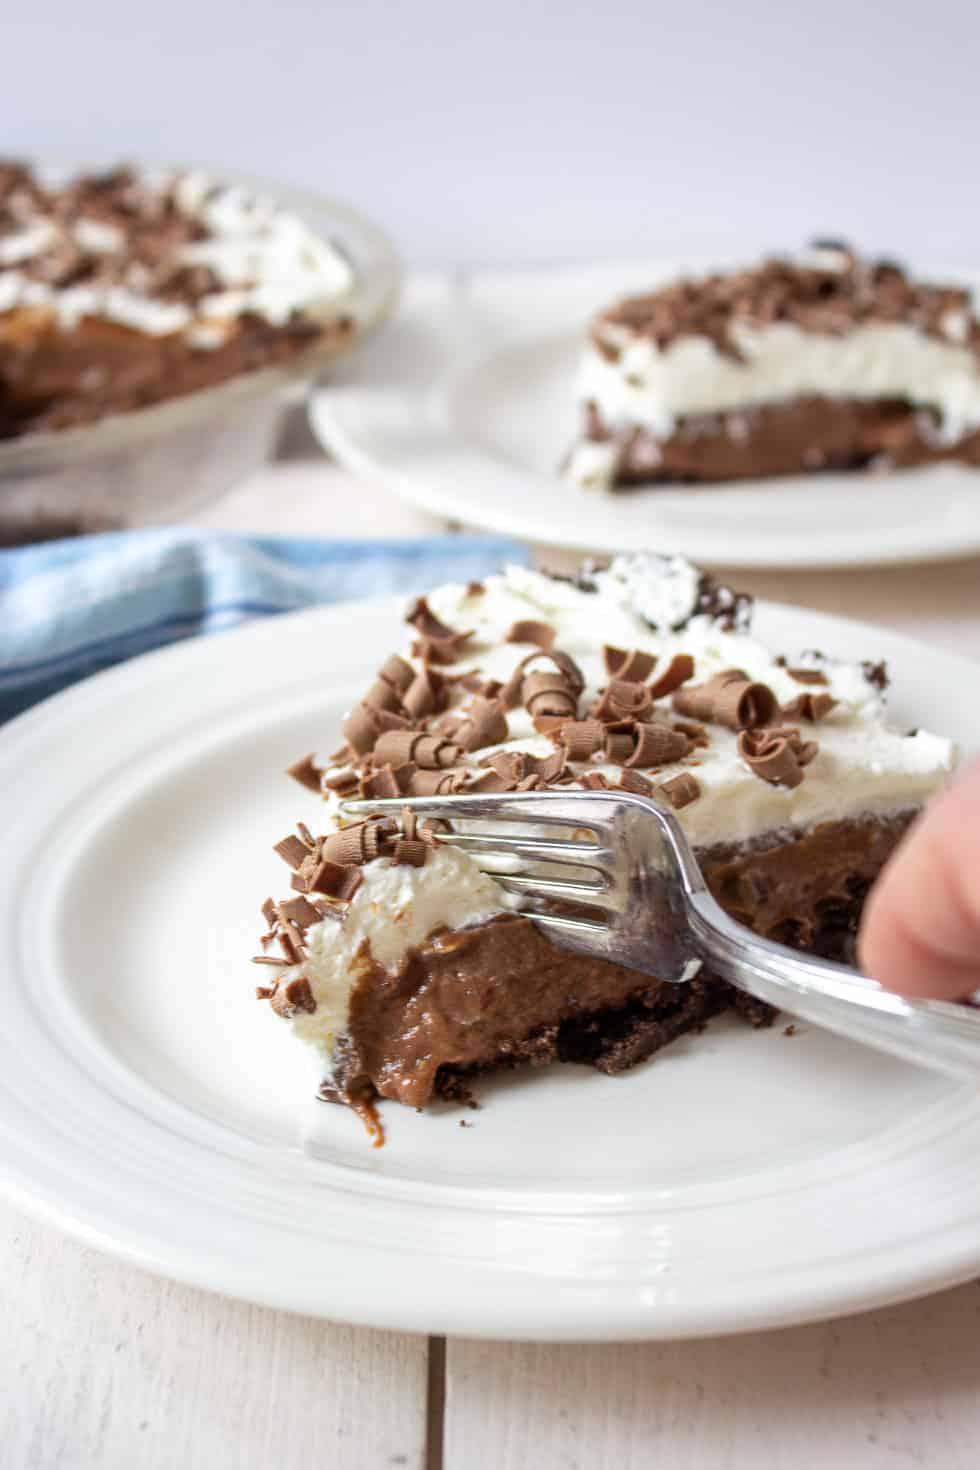 A fork slicing into a piece of chocolate pie topped with whipped cream.